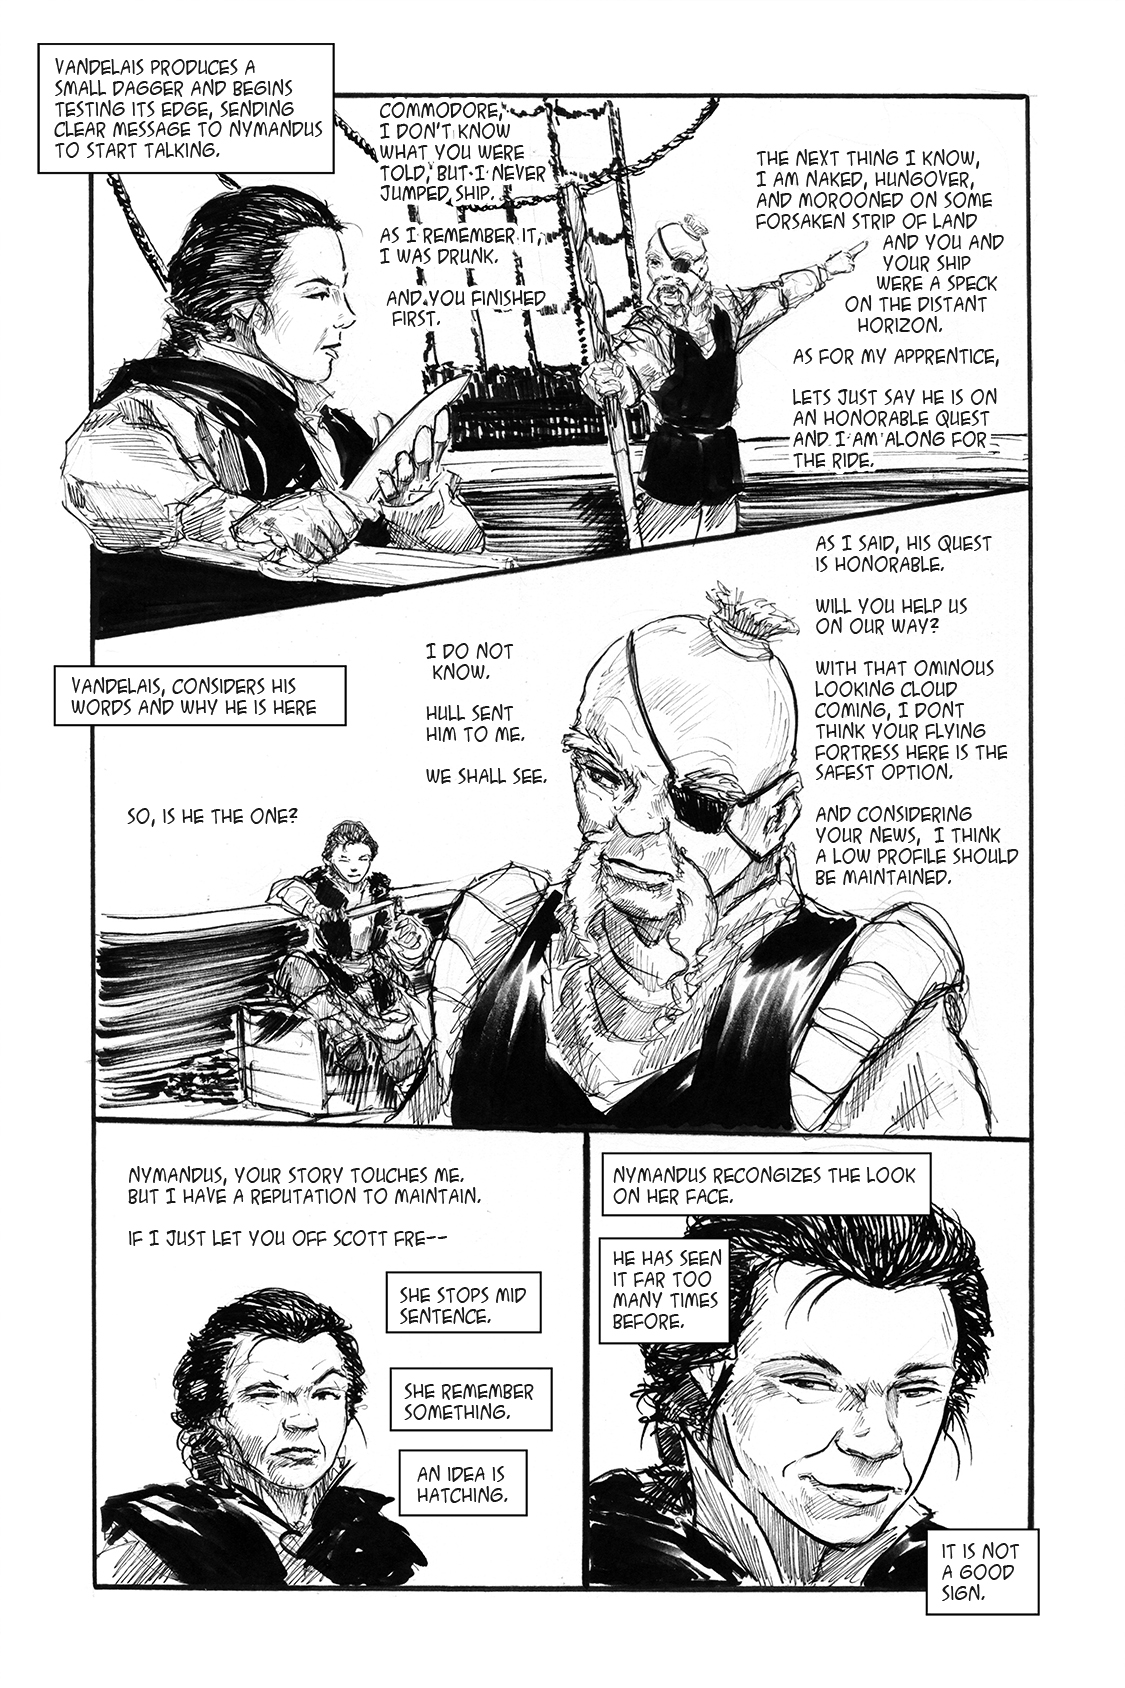 Champions Challenge Pg 107 By Don Higgins